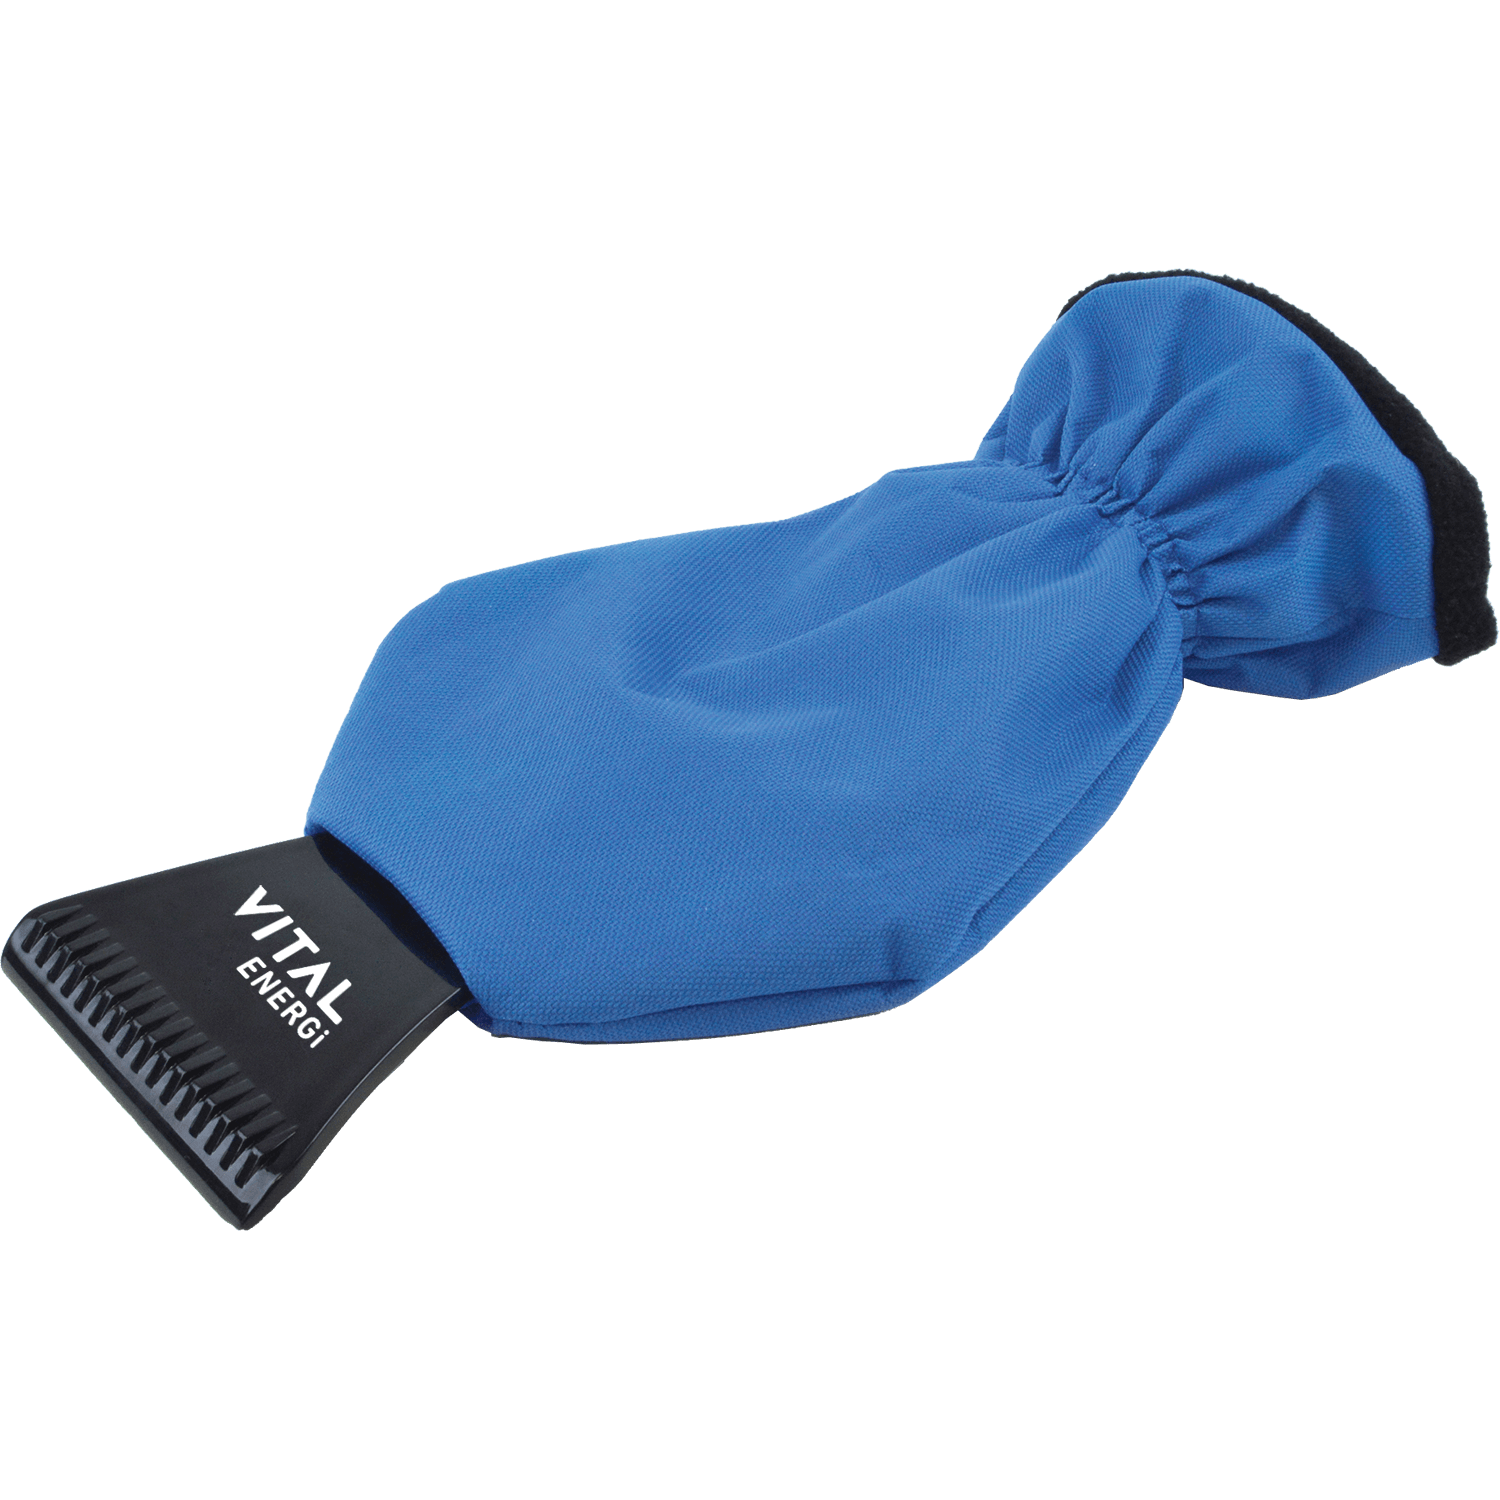 Promotional Ice Scraper Glove